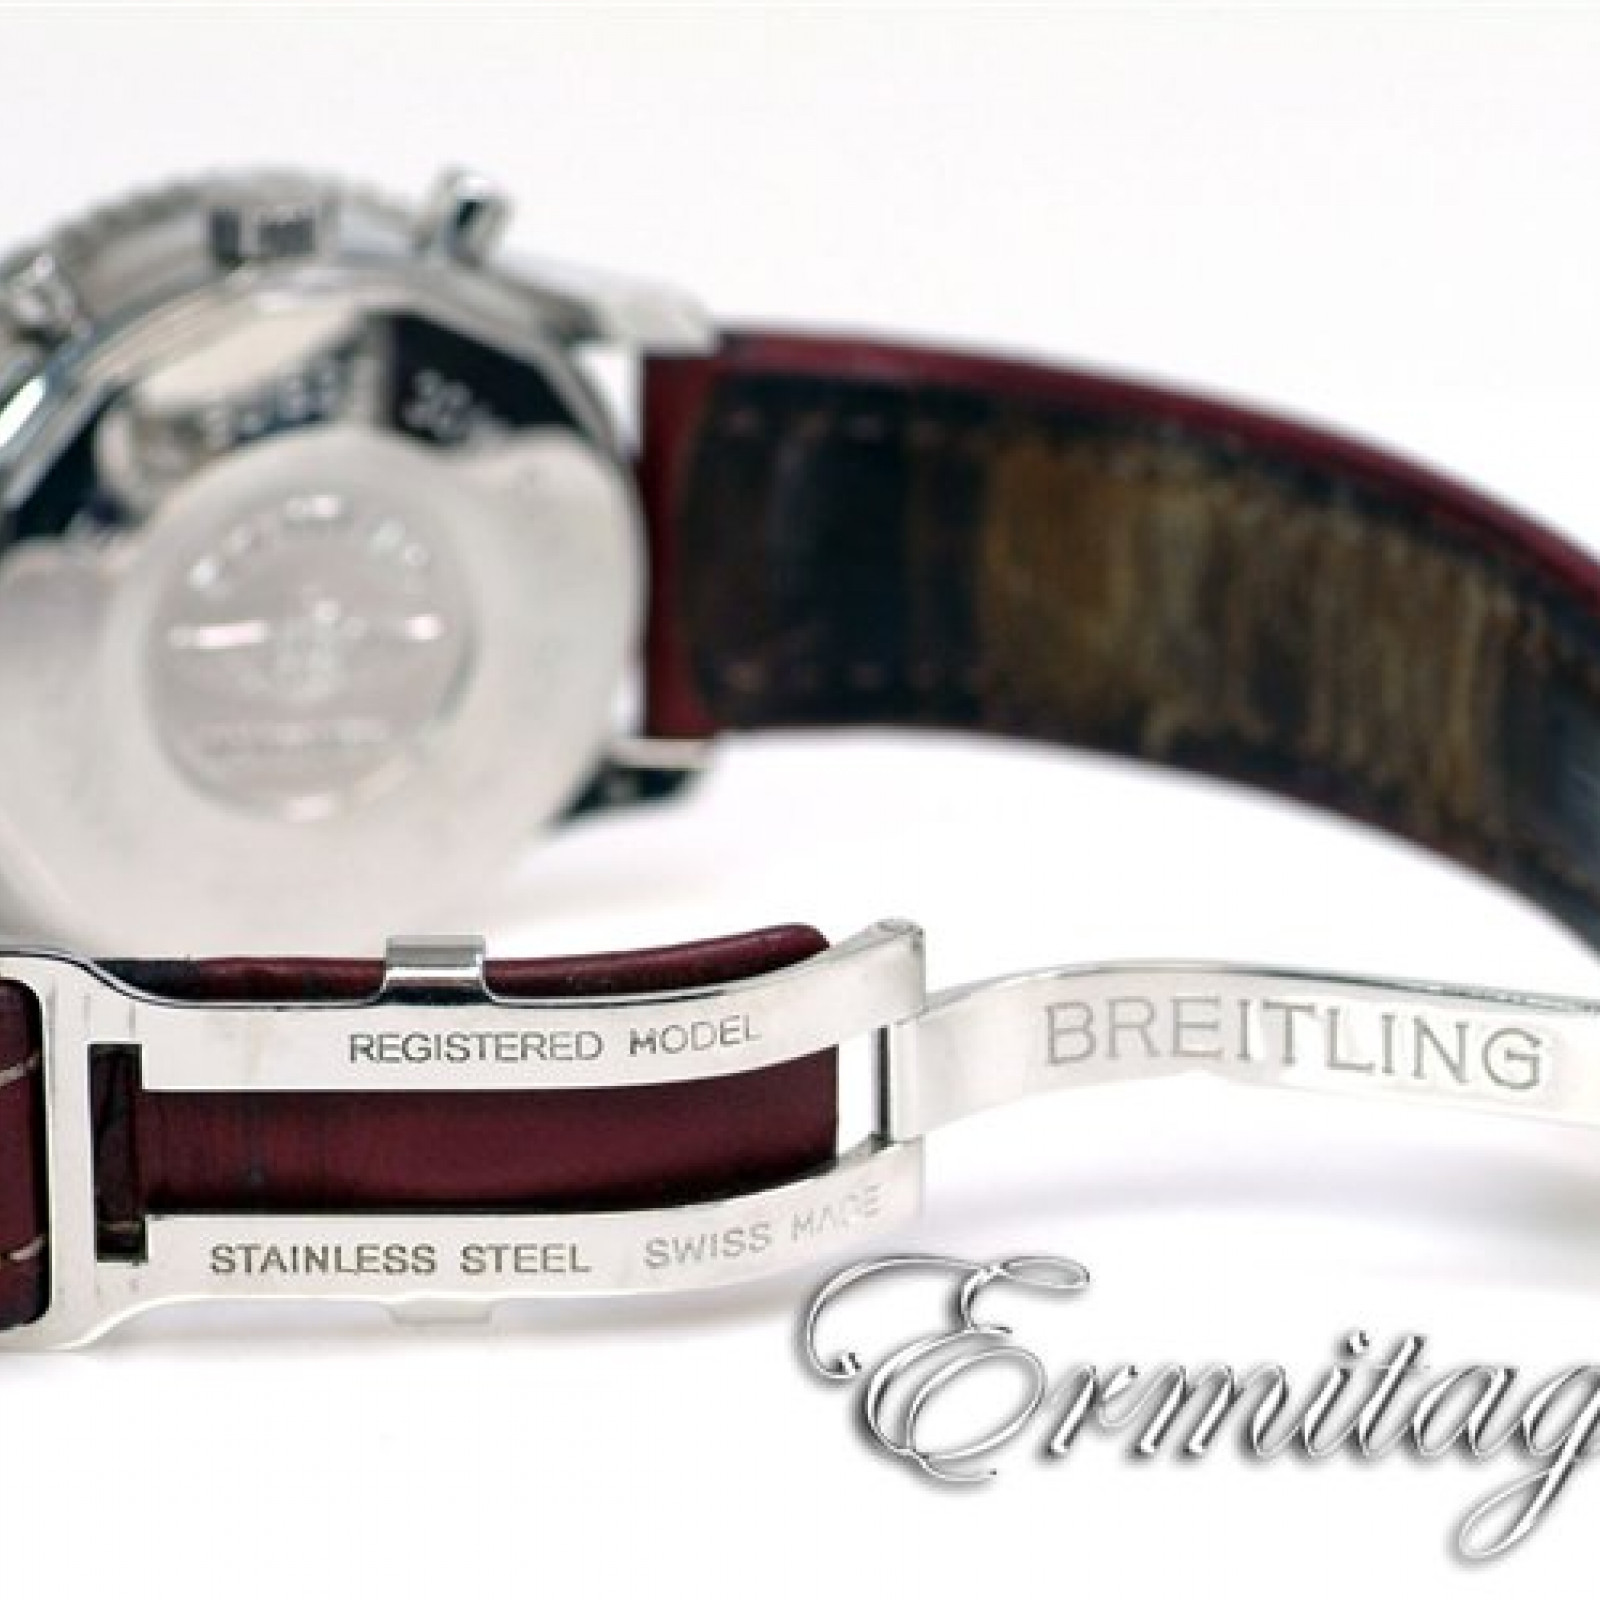 Breitling Navitimer Twin-sixty 2 A39022.1 Steel